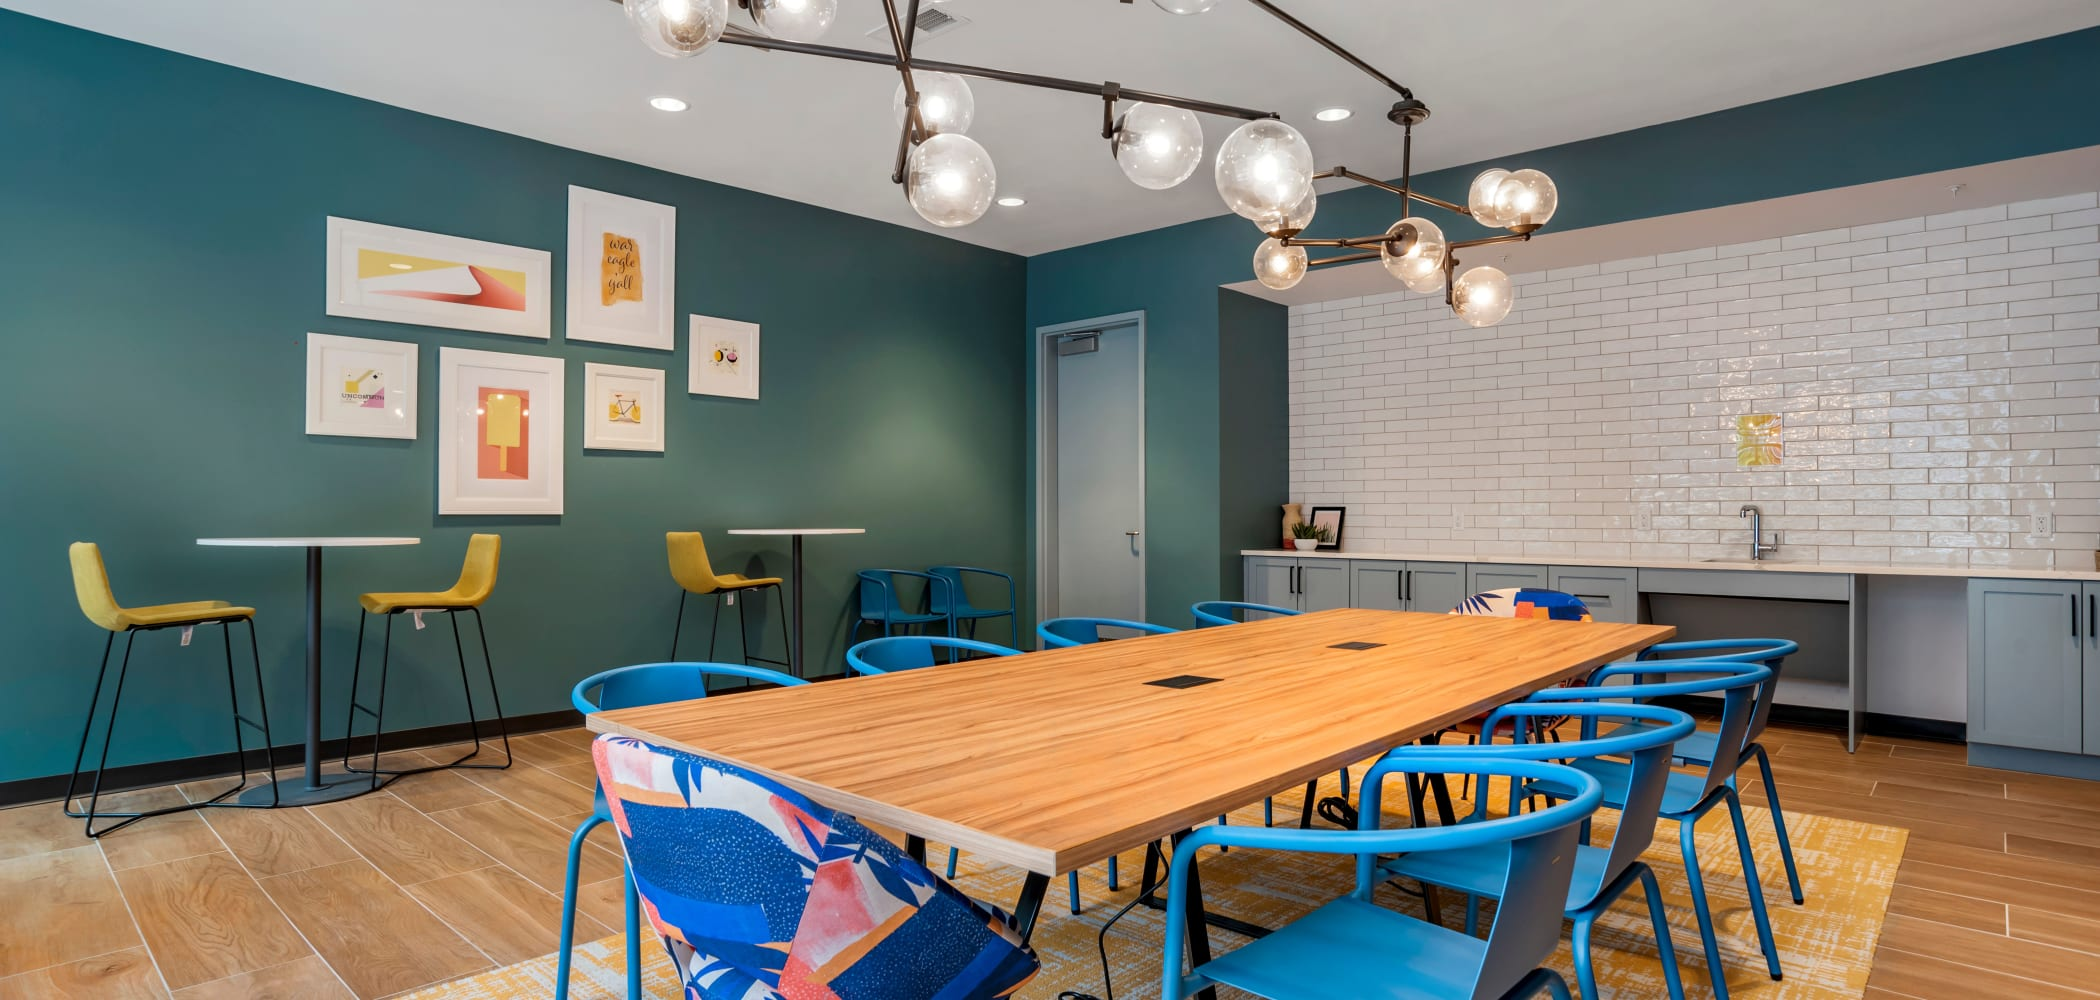 Community dining room with a kitchen at UNCOMMON Auburn in Auburn, Alabama